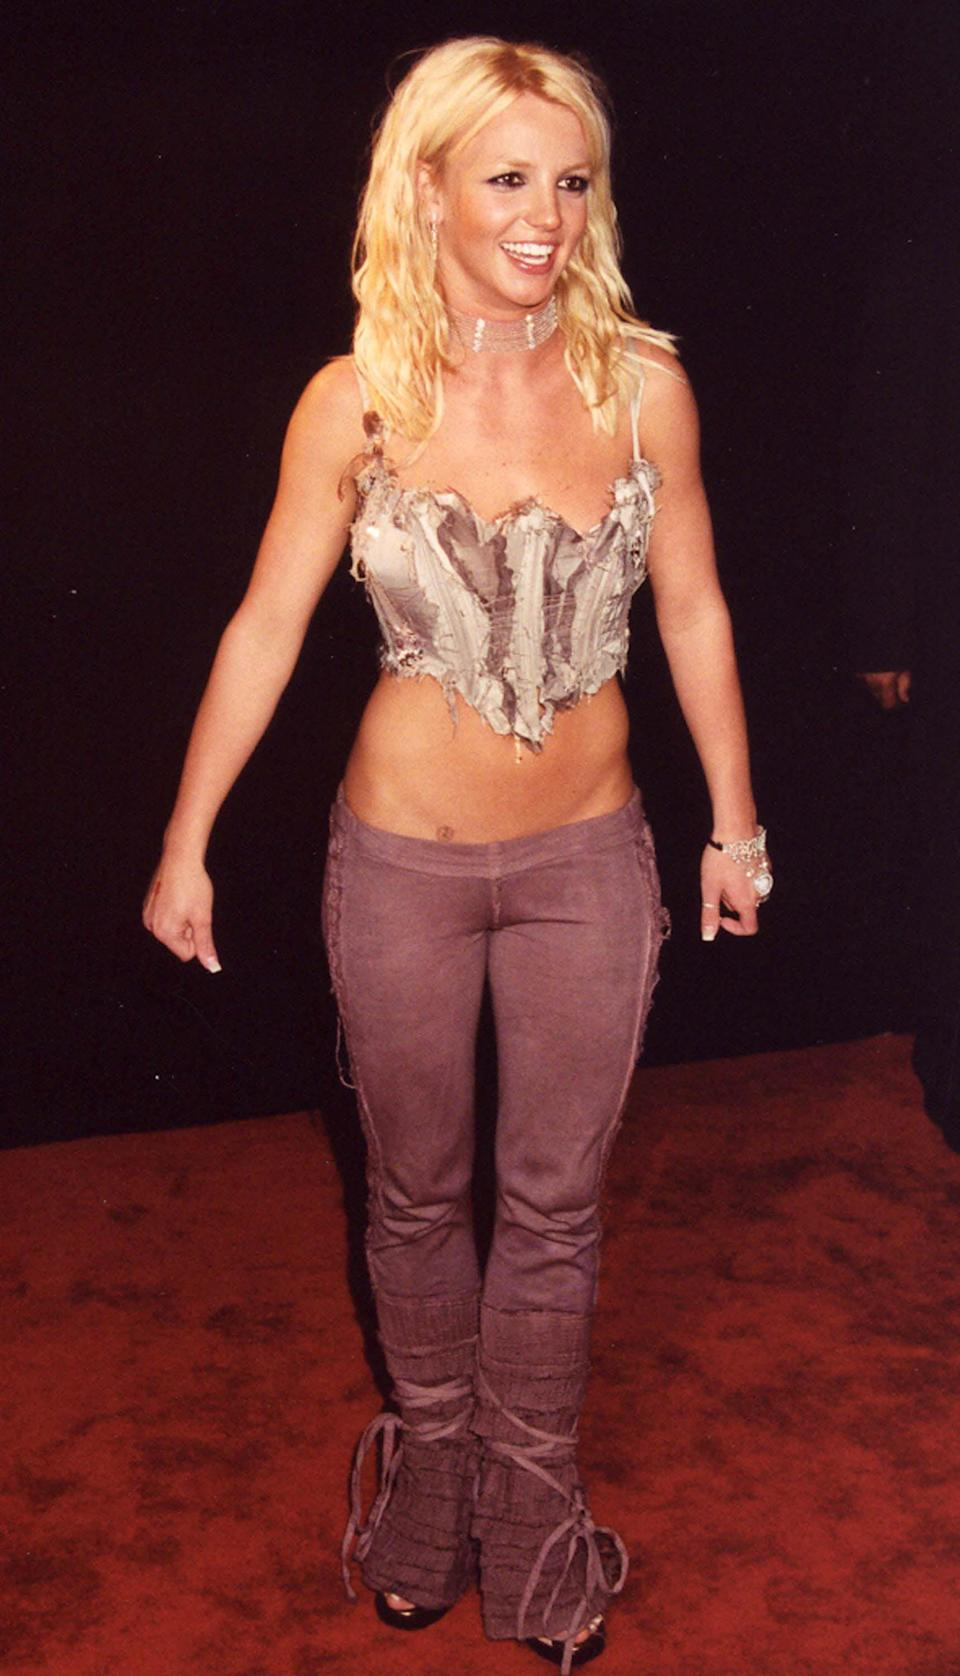 <p>Wearing low-rise pants with a barely-there top at an event.</p>